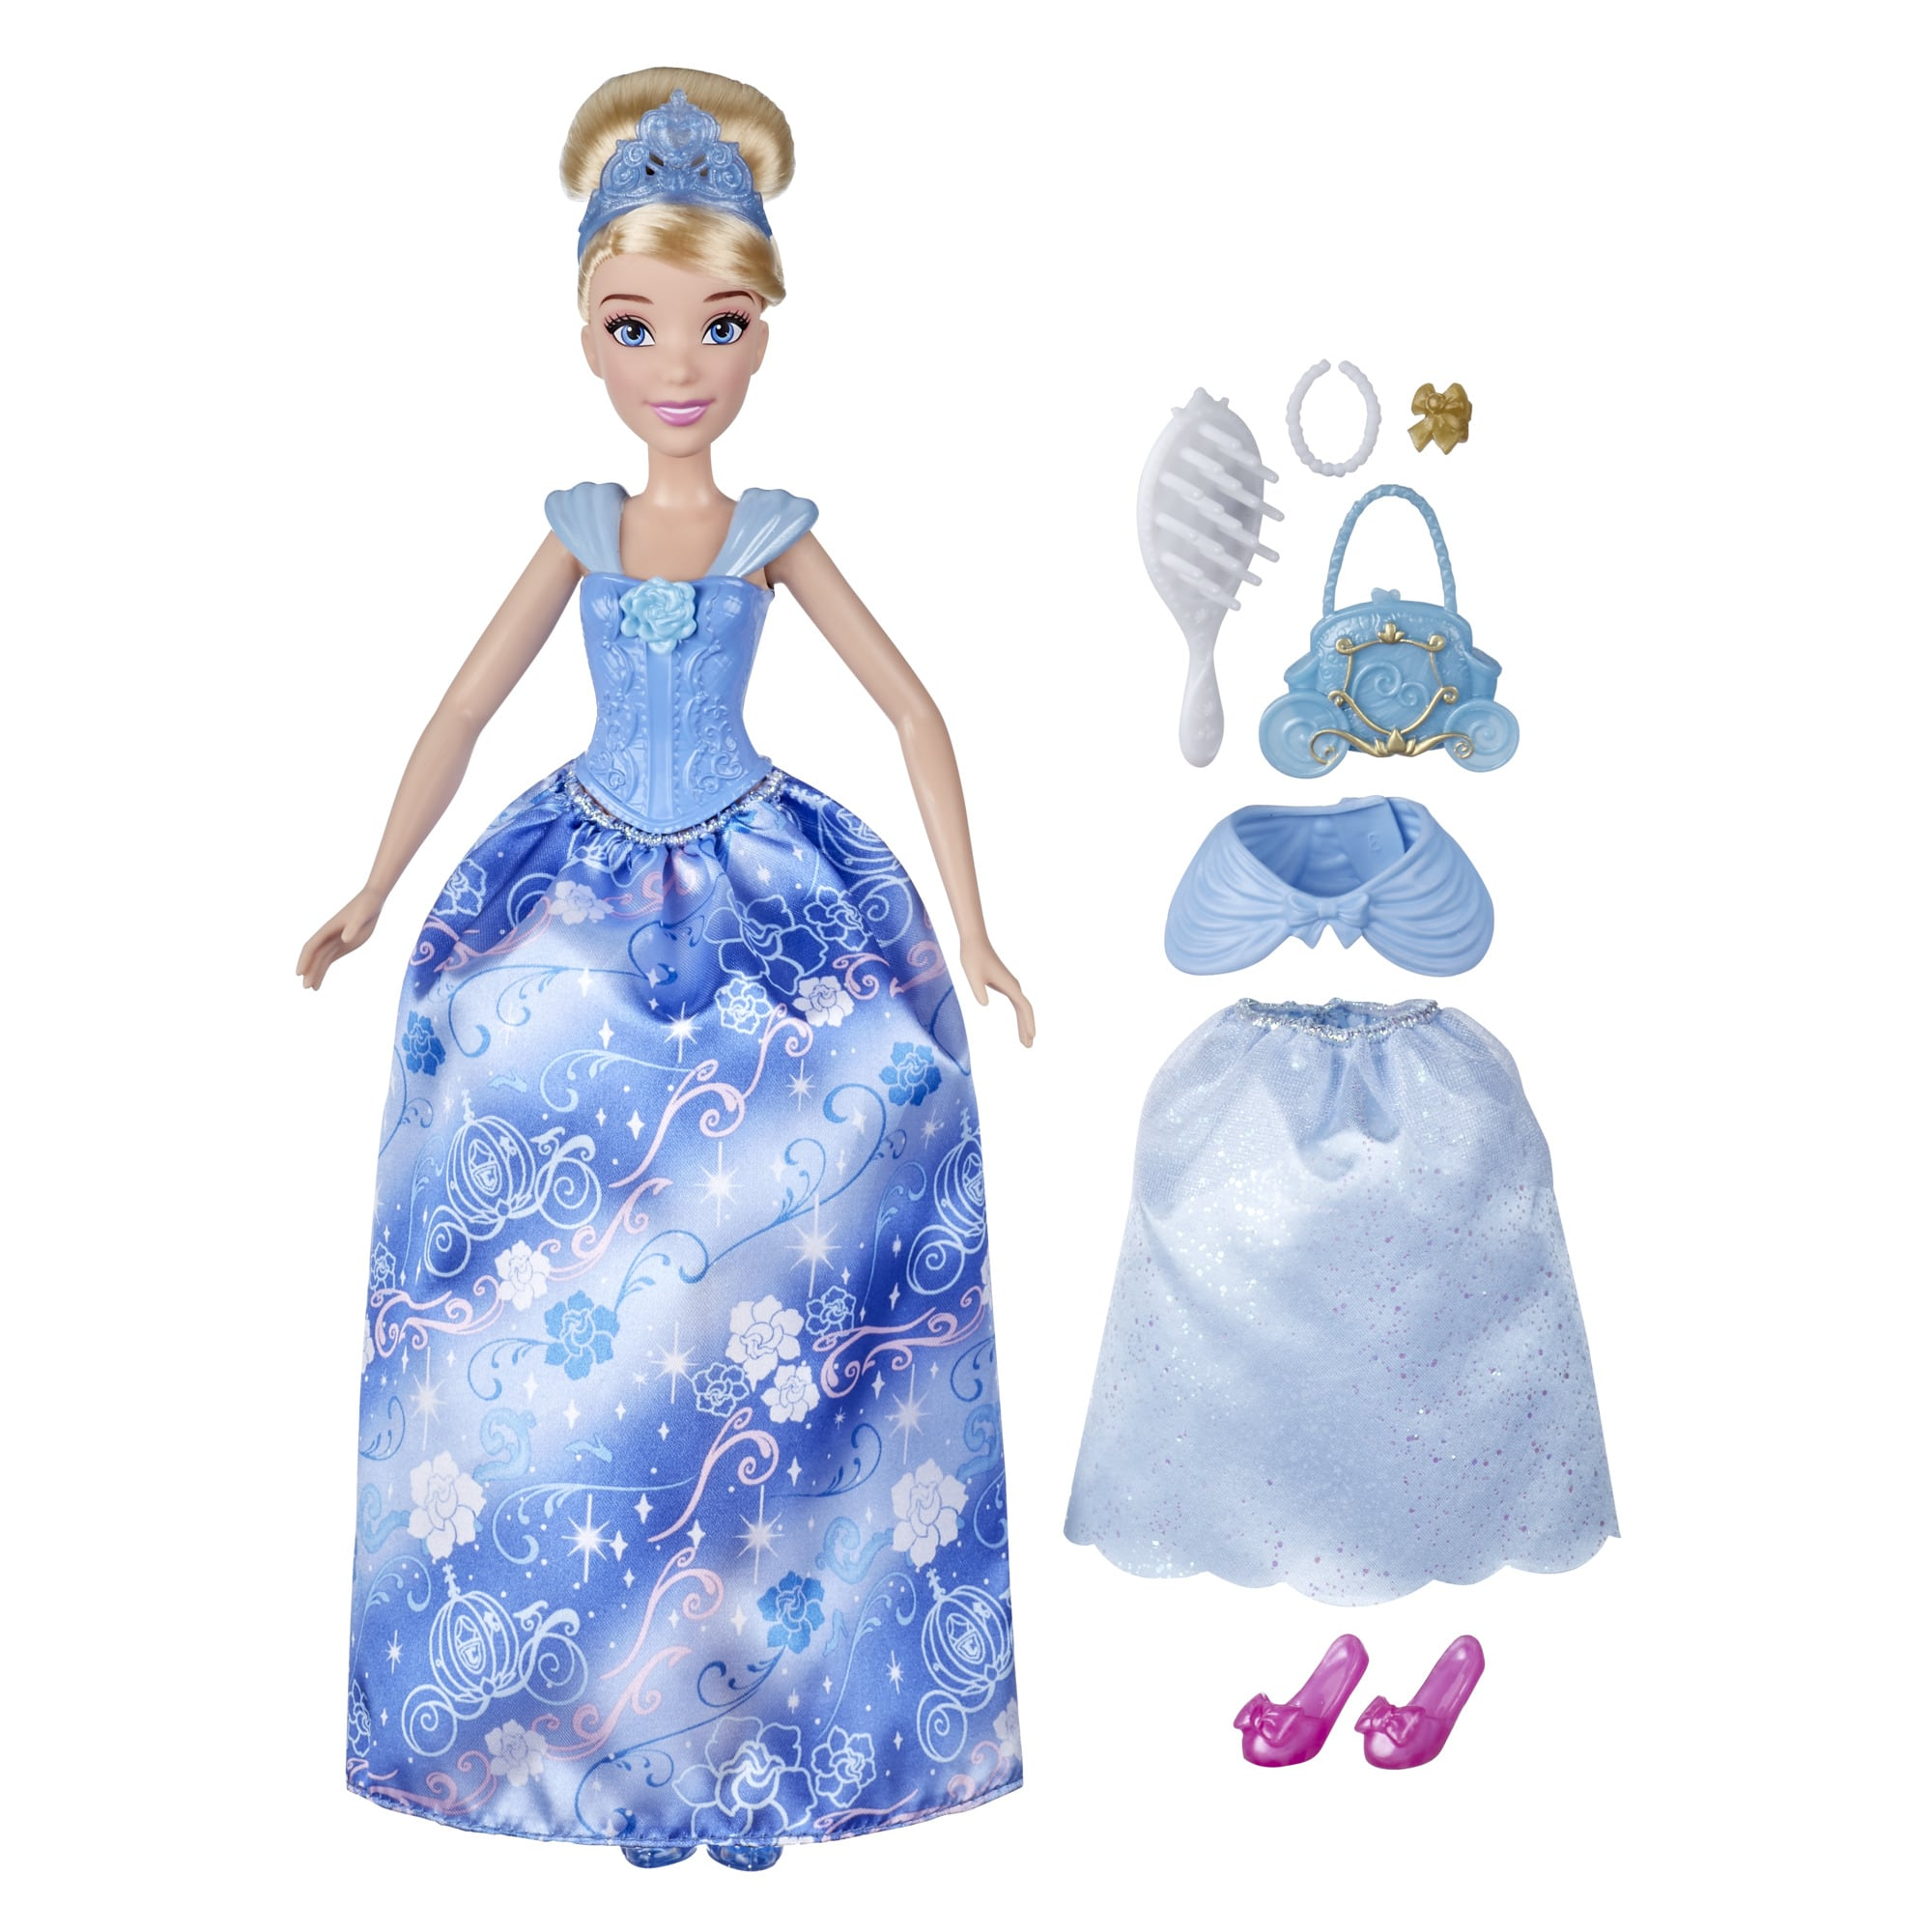 Disney Princess Style Surprise Cinderella Doll w/ 10 Fashions & Accessories